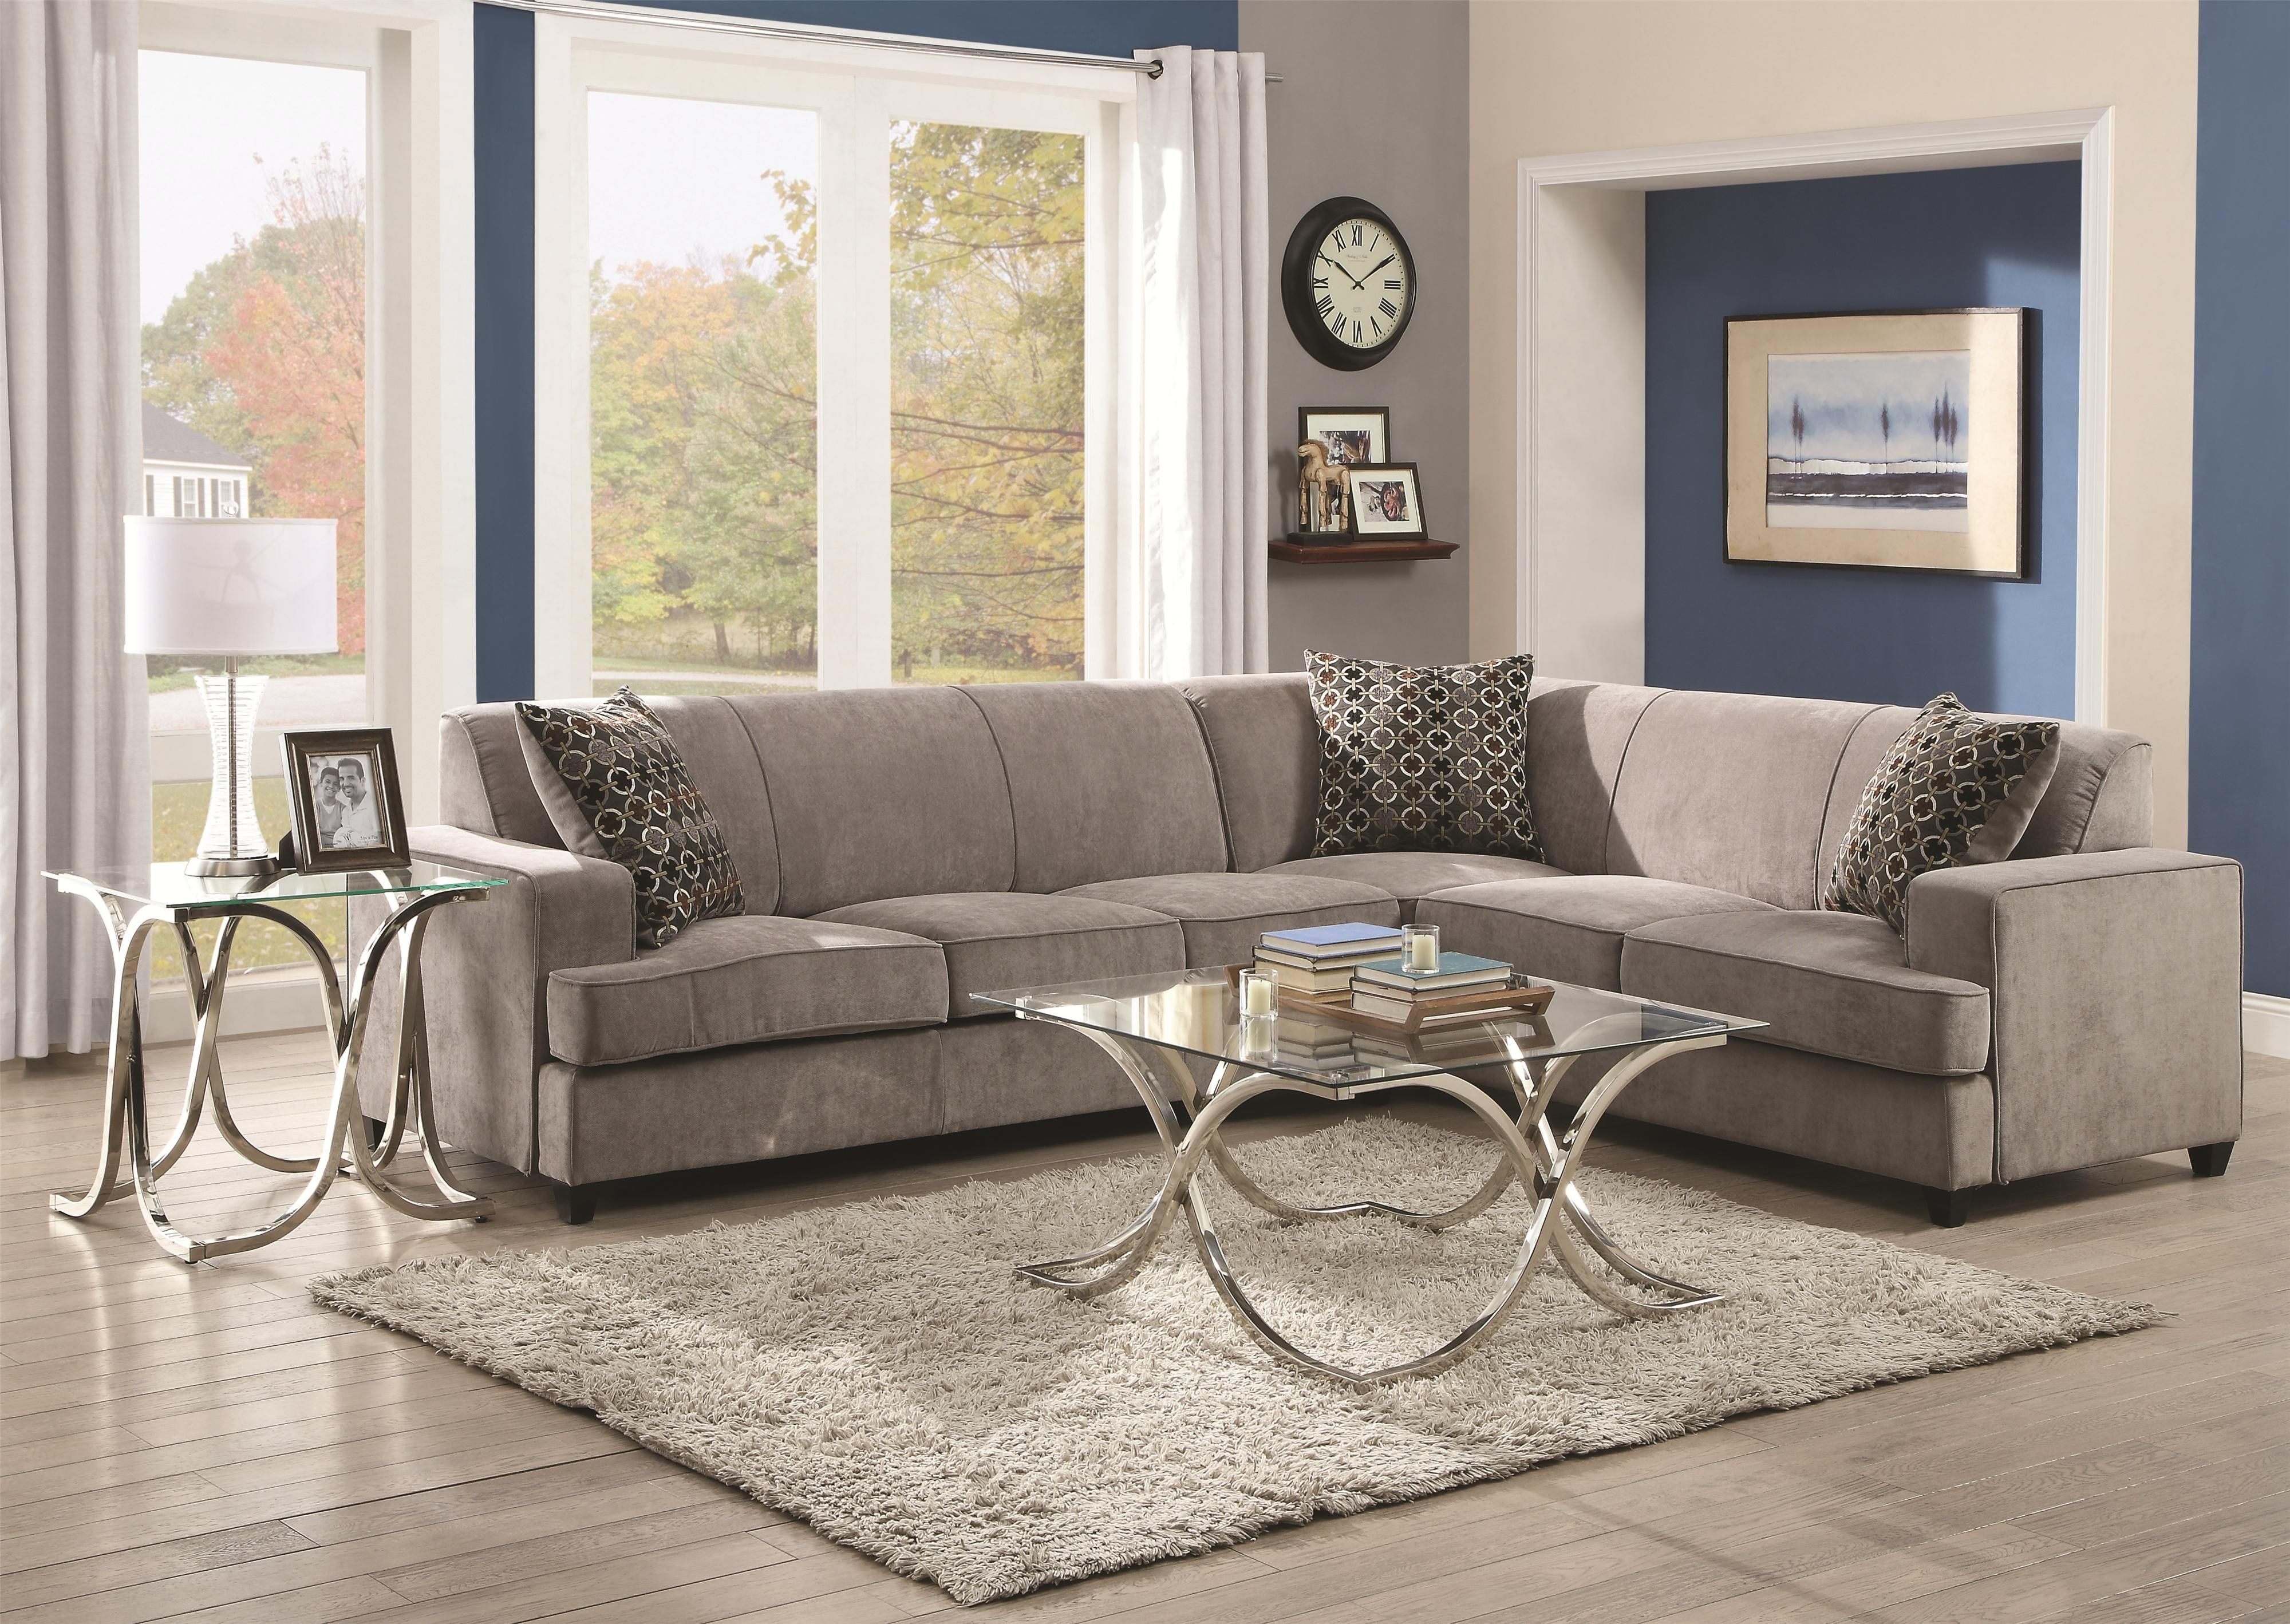 Tess Sectional Sofa for Corners by Coaster